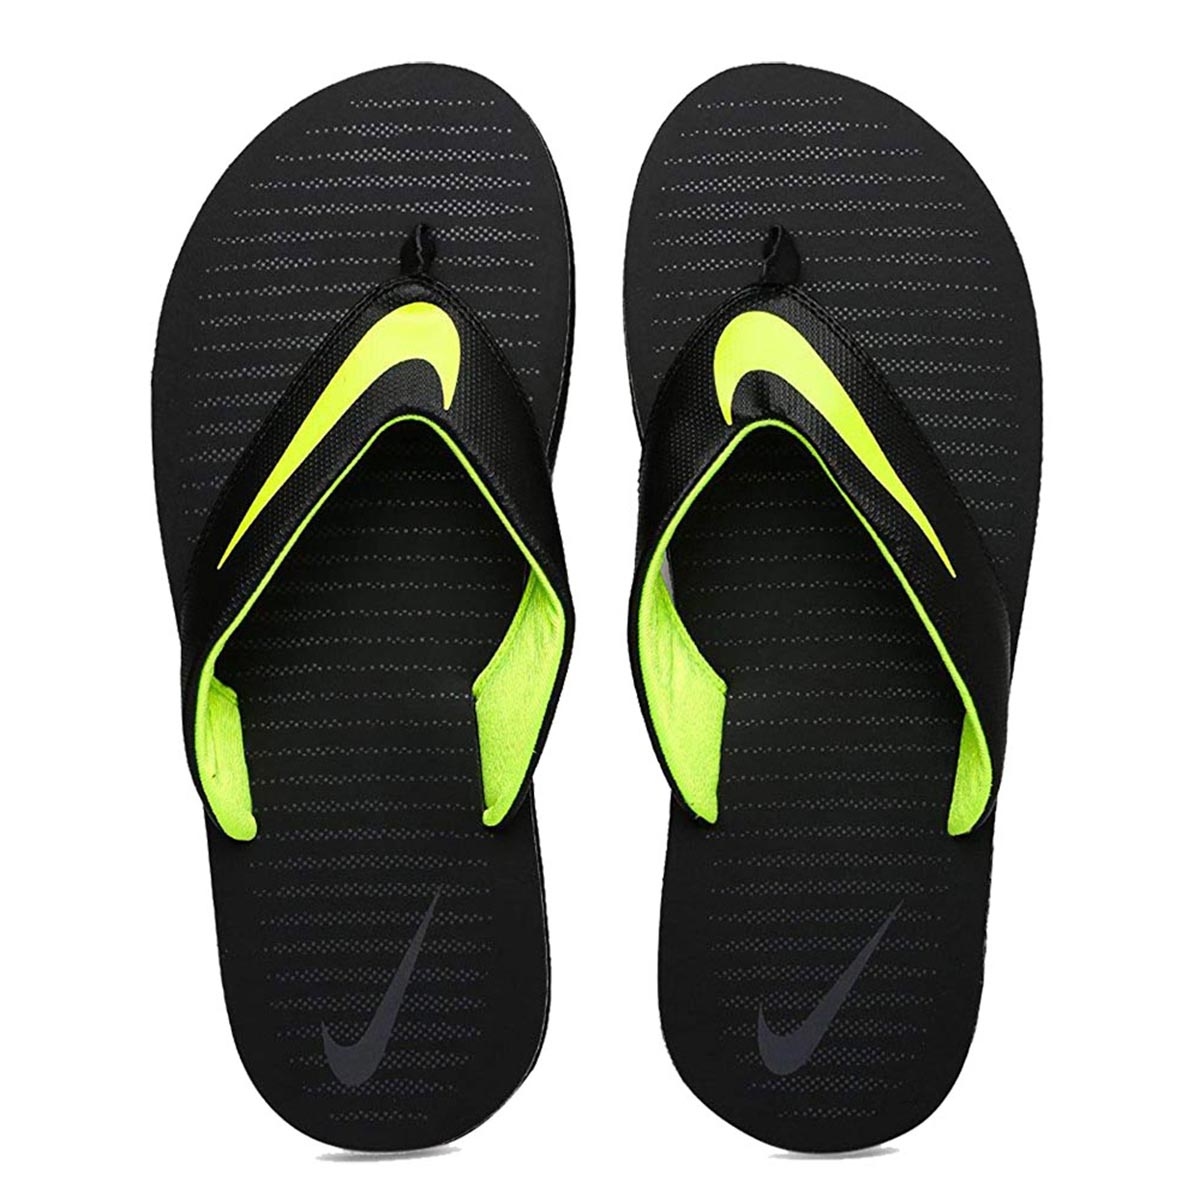 separation shoes 4f987 fd1c9 Nike Chroma Thong 5 Flip Flops (Black/Volt/Grey)